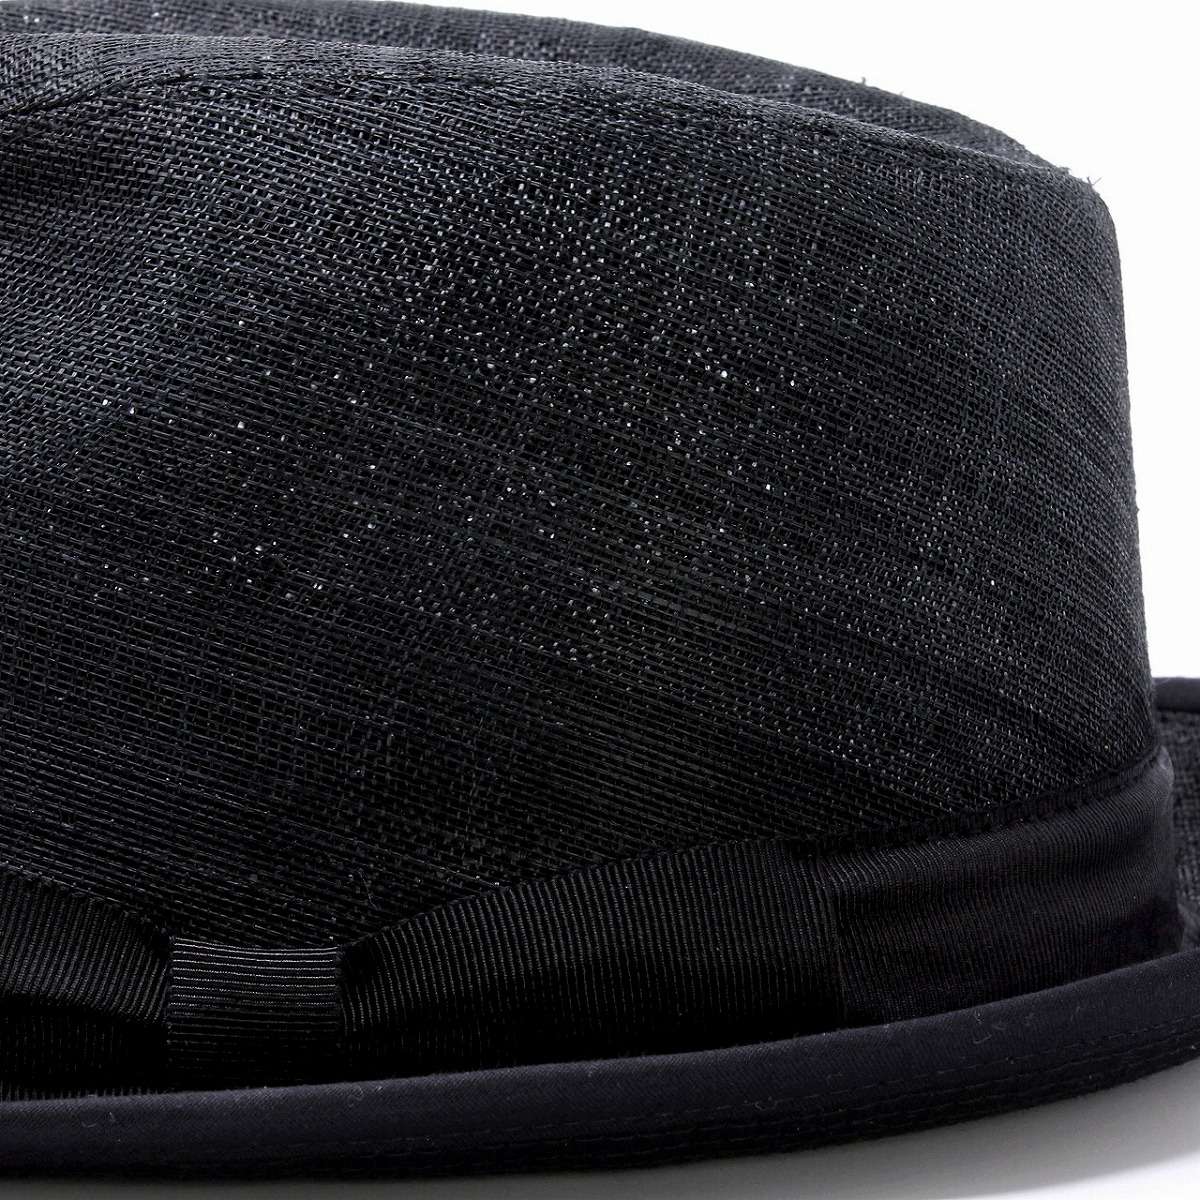 It is a present gift hat on size size adjustment Shin pull plain fabric / black black [fedora] Respect for the Aged Day when MATSUI hat men M L LL 3L that soft felt hat hat China Mai linen soft felt hat gentleman soft cap りぼん is cool in the spring and su